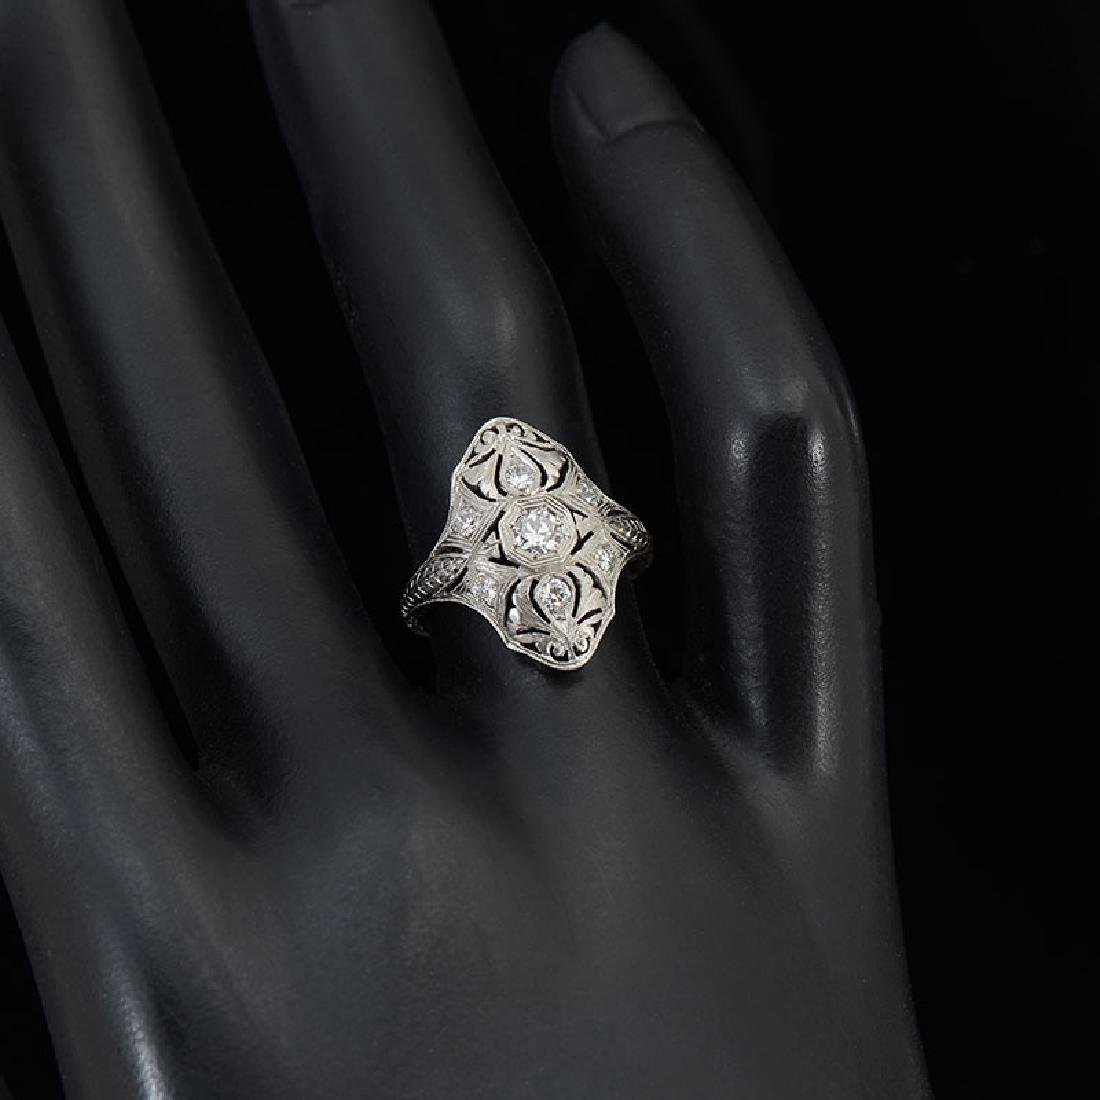 PLATINUM EDWARDIAN DIAMOND DINNER RING - 2